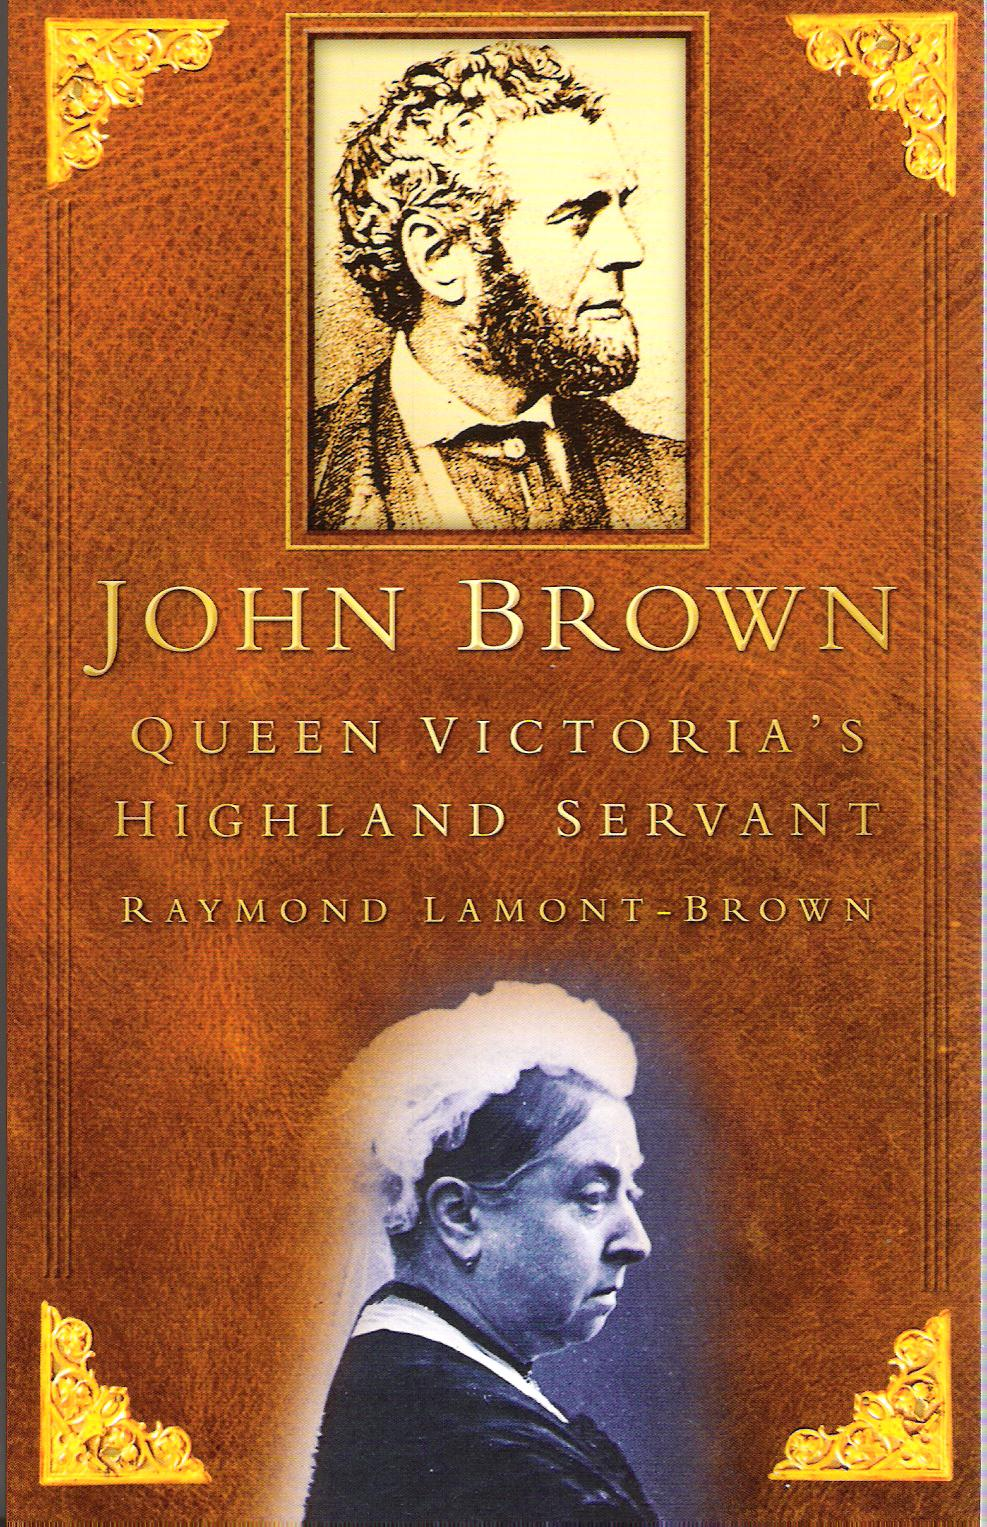 John Brown, Queen Victoria's Highland Servant.